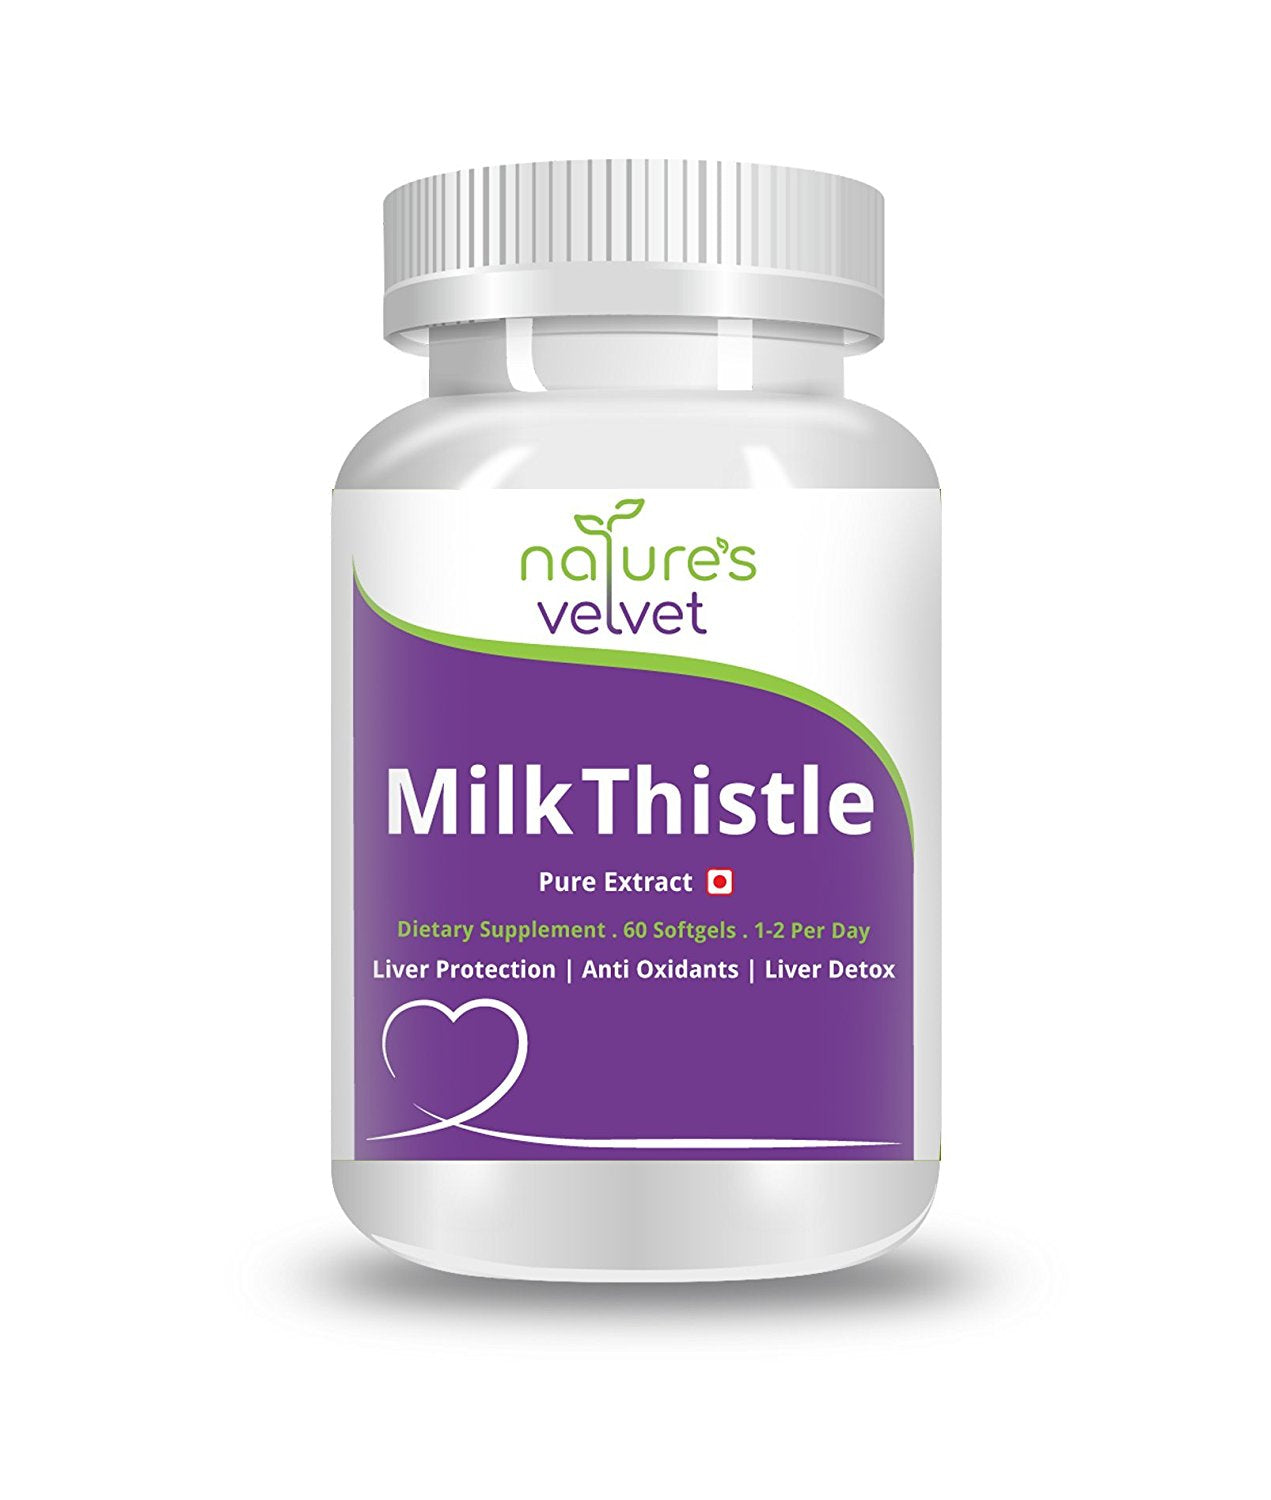 Natures Velvet Lifecare: Milk Thistle Pure Extract, 60 Softgels